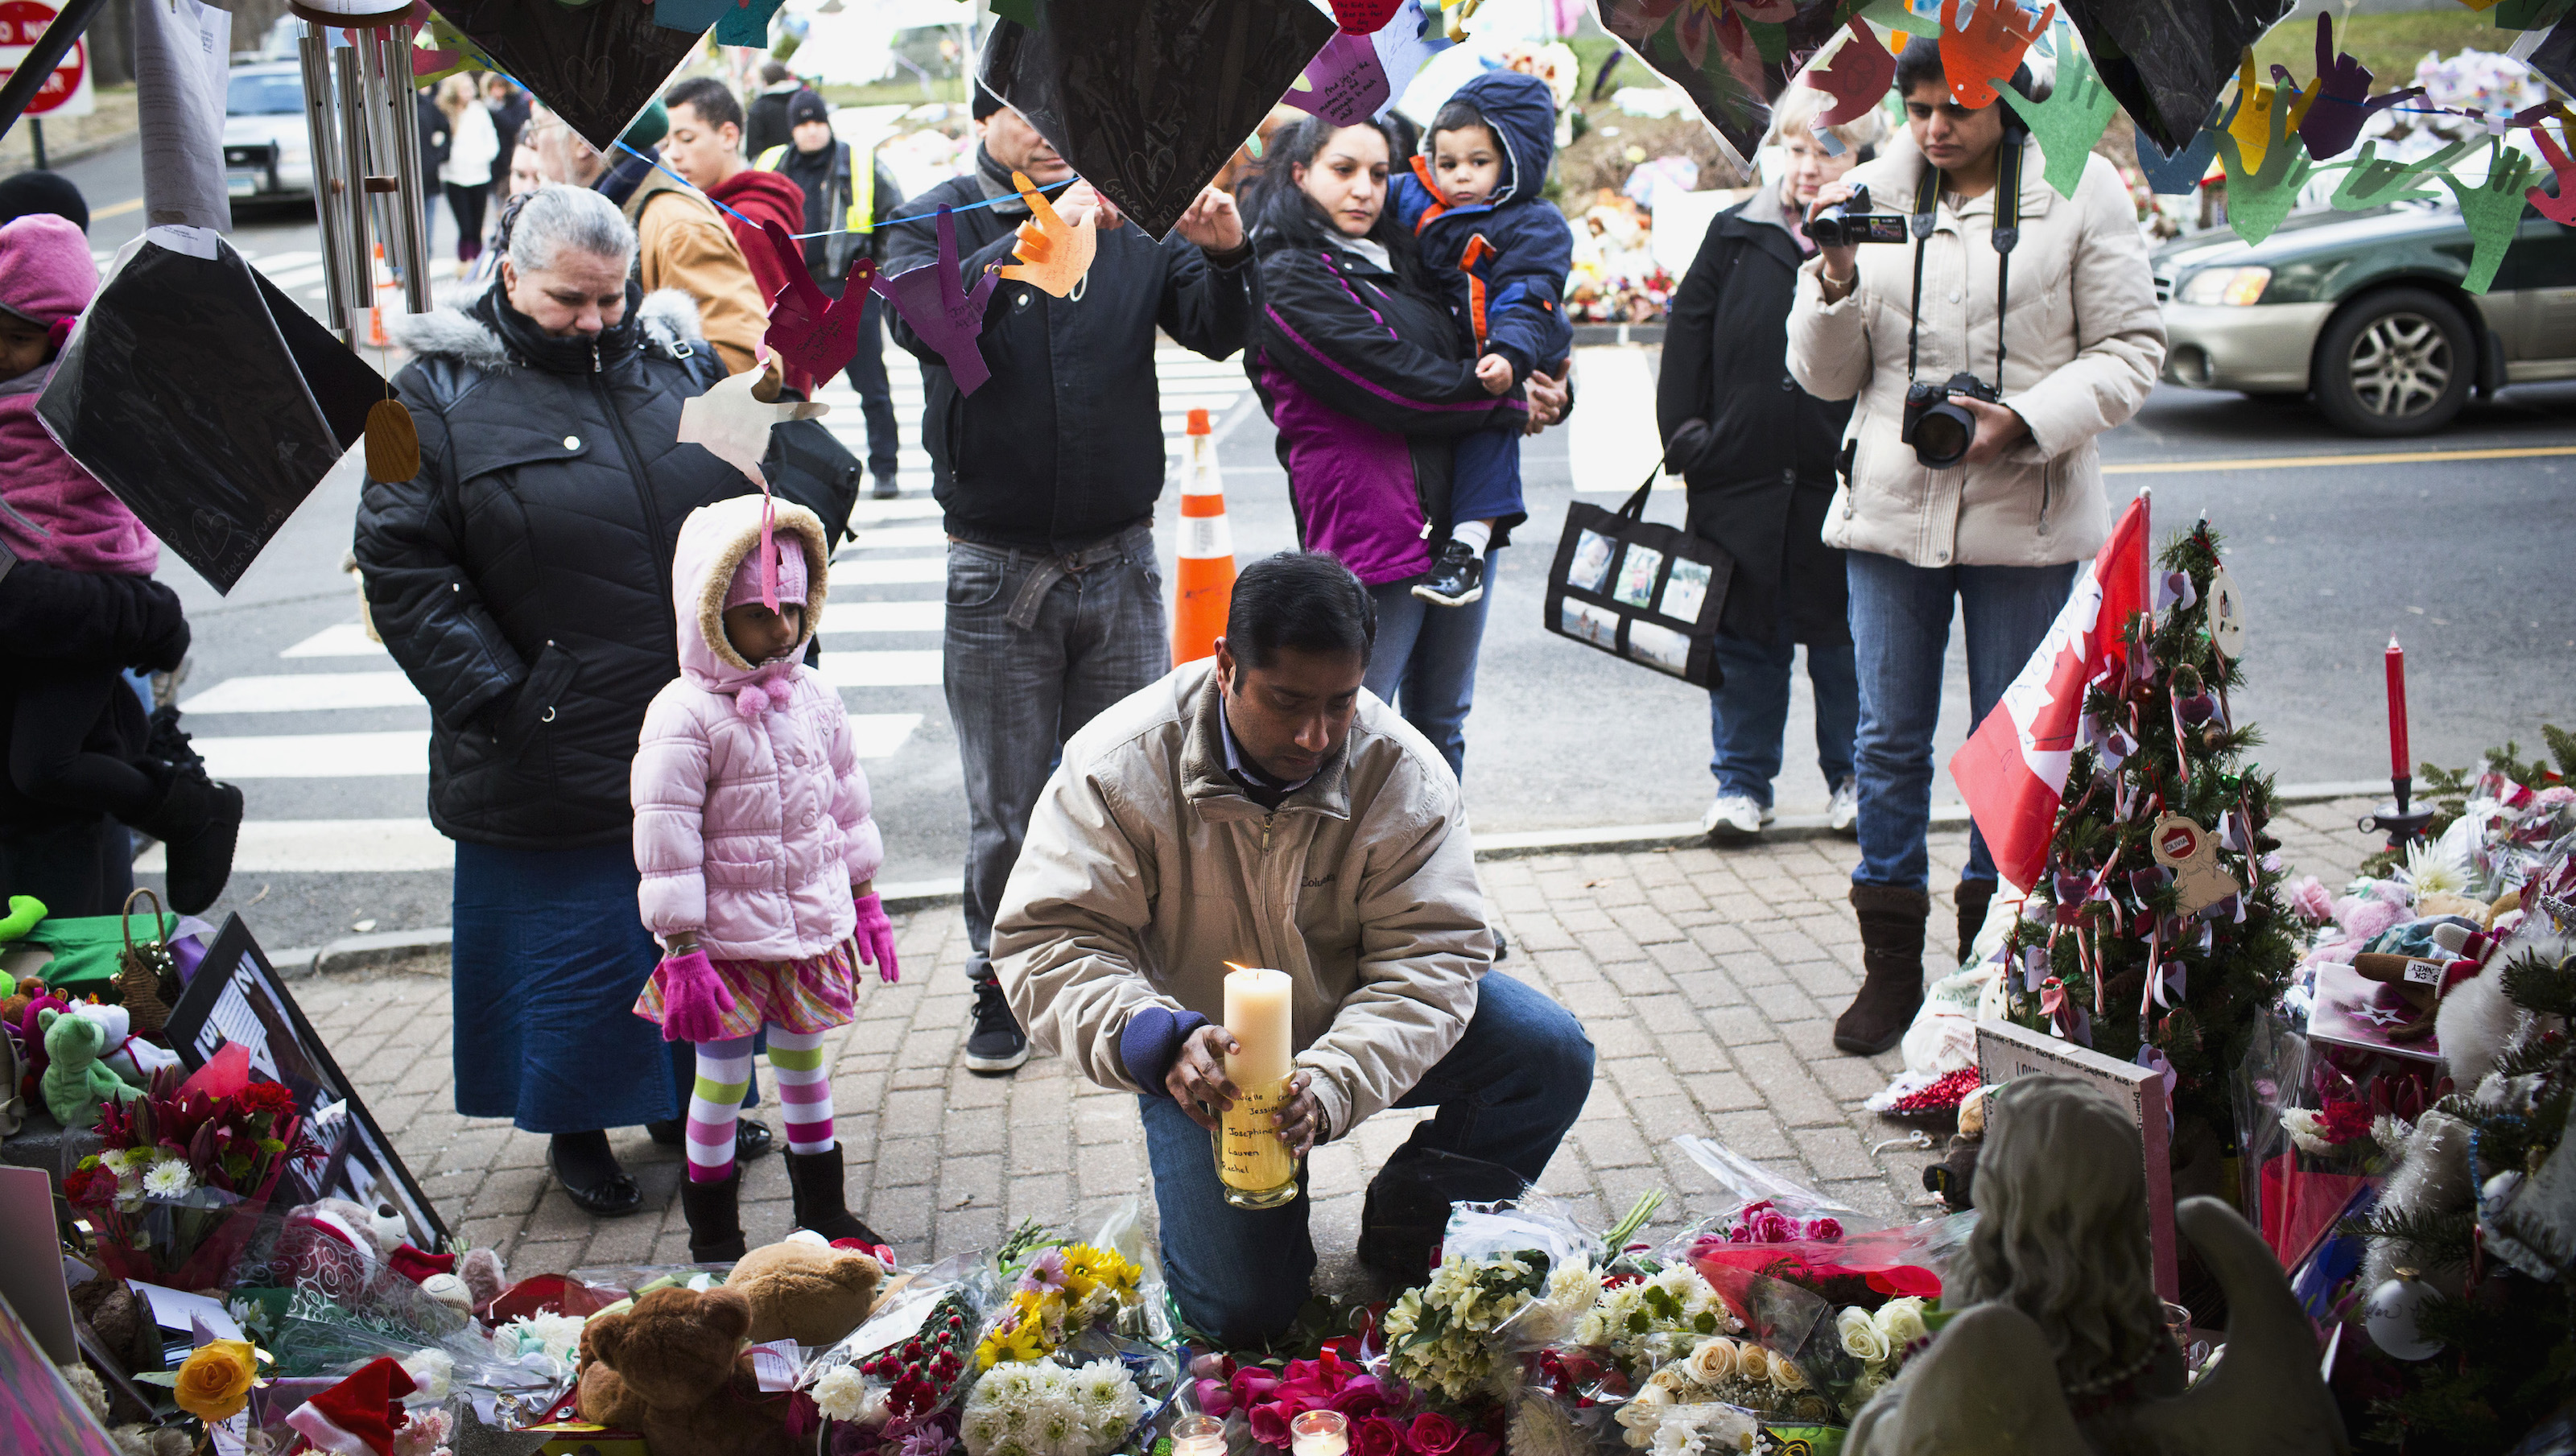 A man places a candle at a memorial for those killed in the massacre at Sandy Hook Elementary School in Sandy Hook, Connecticut December 22, 2012. REUTERS/Andrew Burton (UNITED STATES - Tags: CRIME LAW EDUCATION) - RTR3BUMN